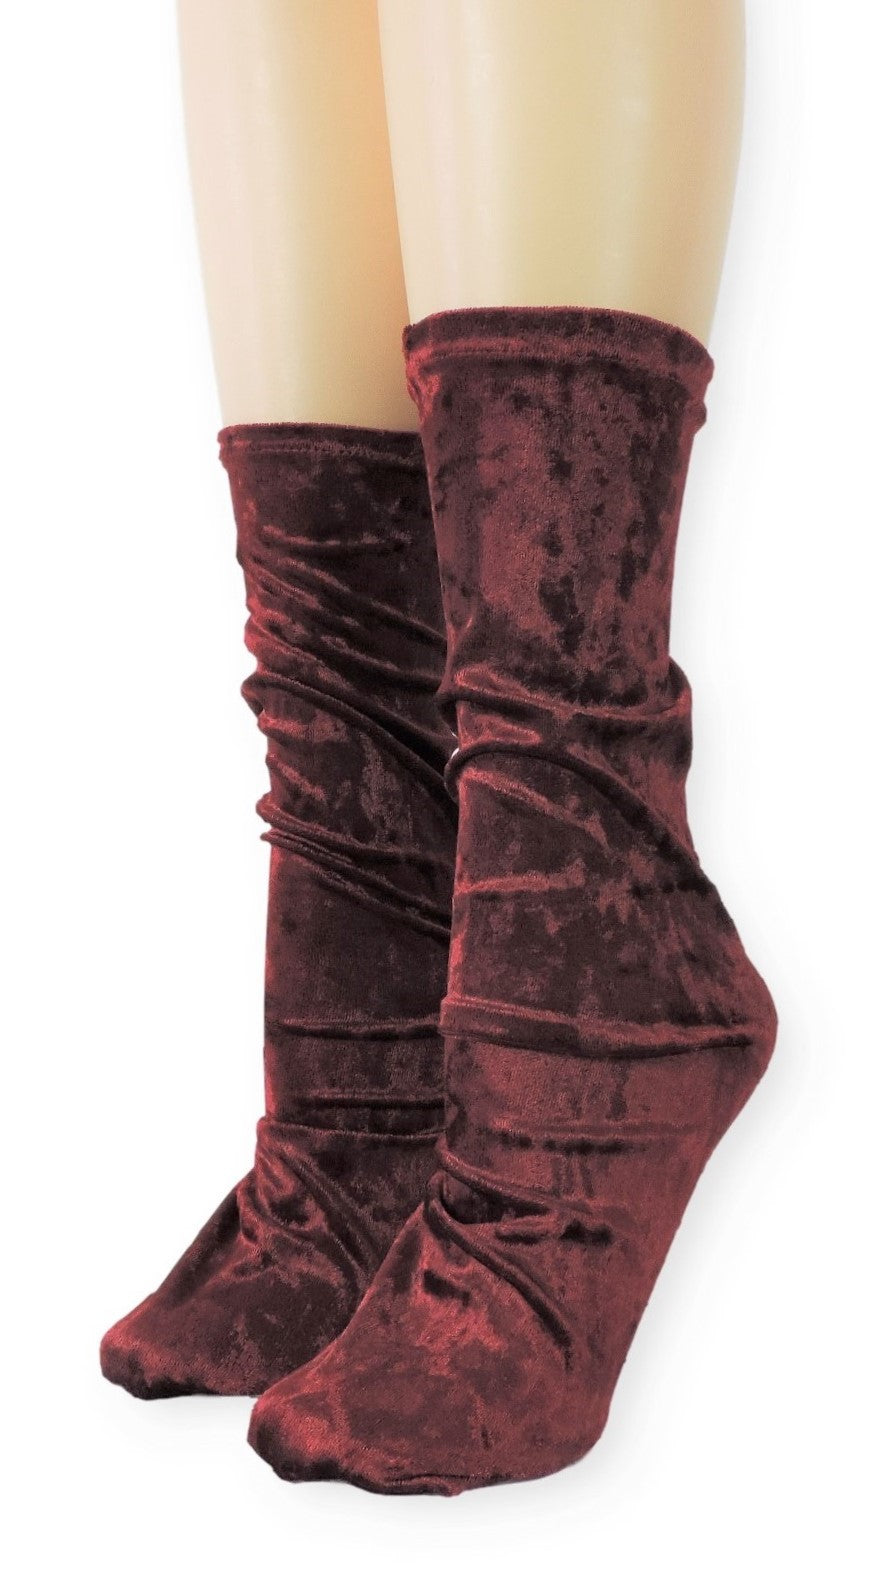 Maroon Crushed Velvet Socks - Global Trendz Fashion®